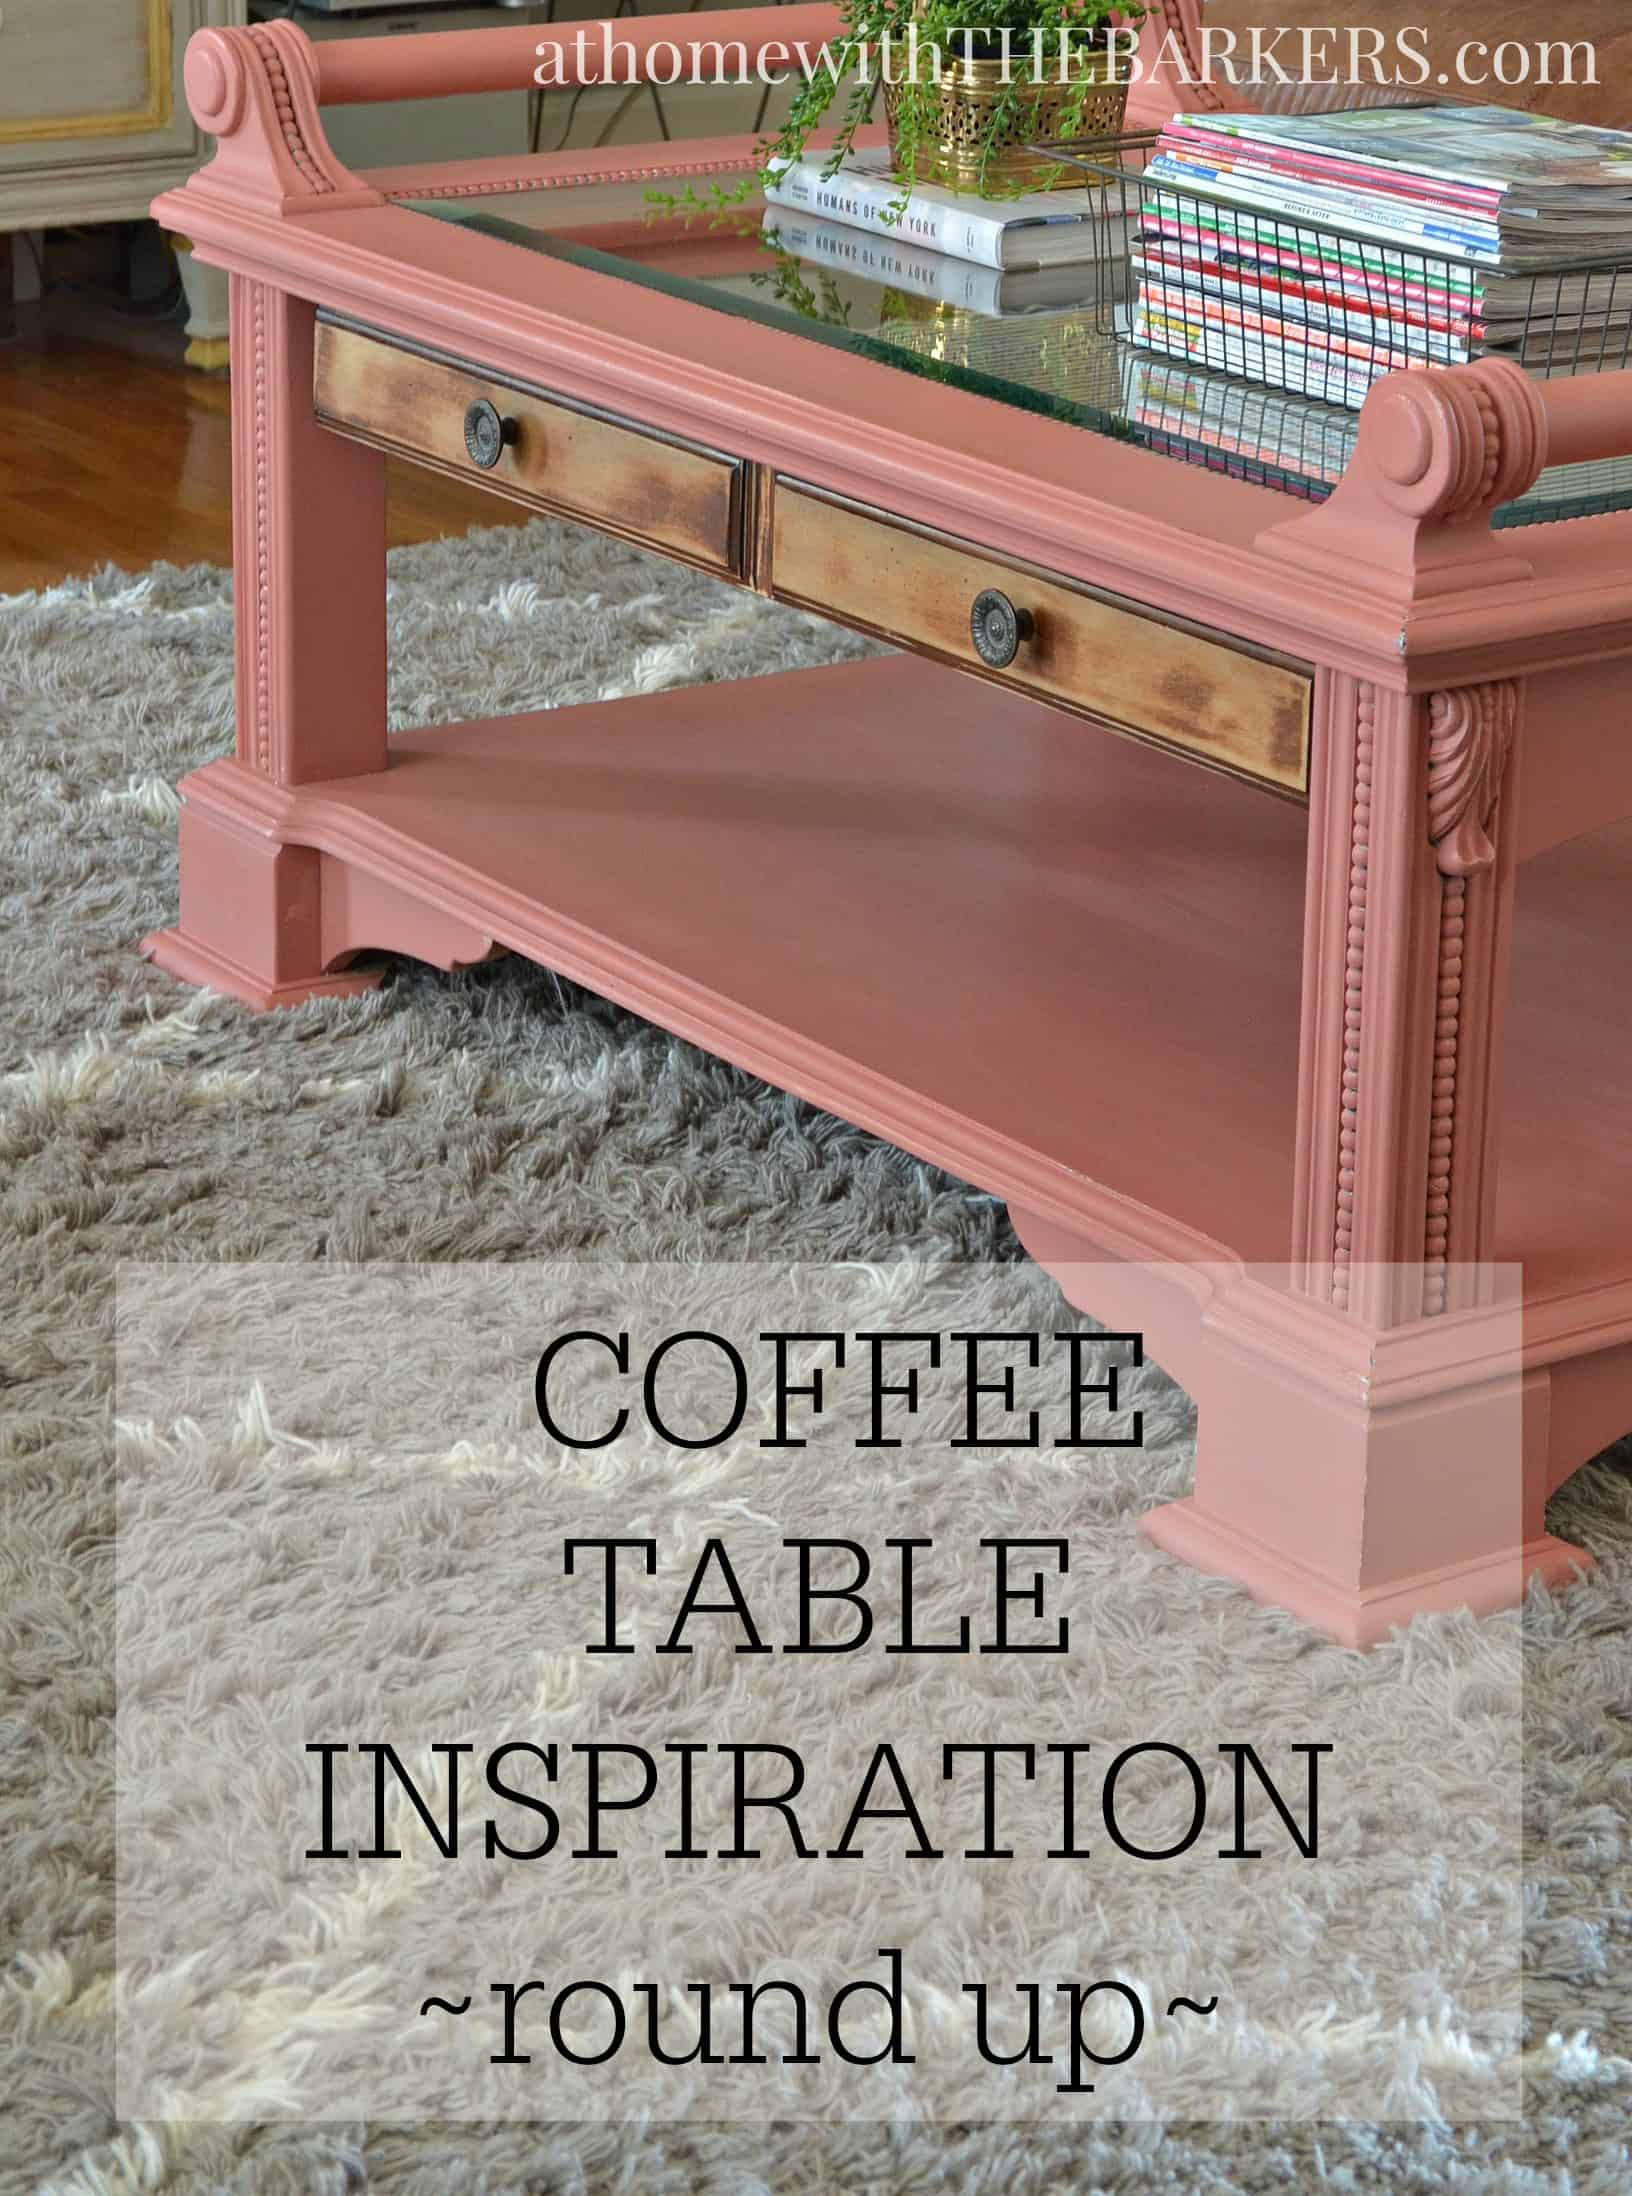 Coffee Table Inspiration- At Home with The Barkers on Coffee Table Inspiration  id=56066